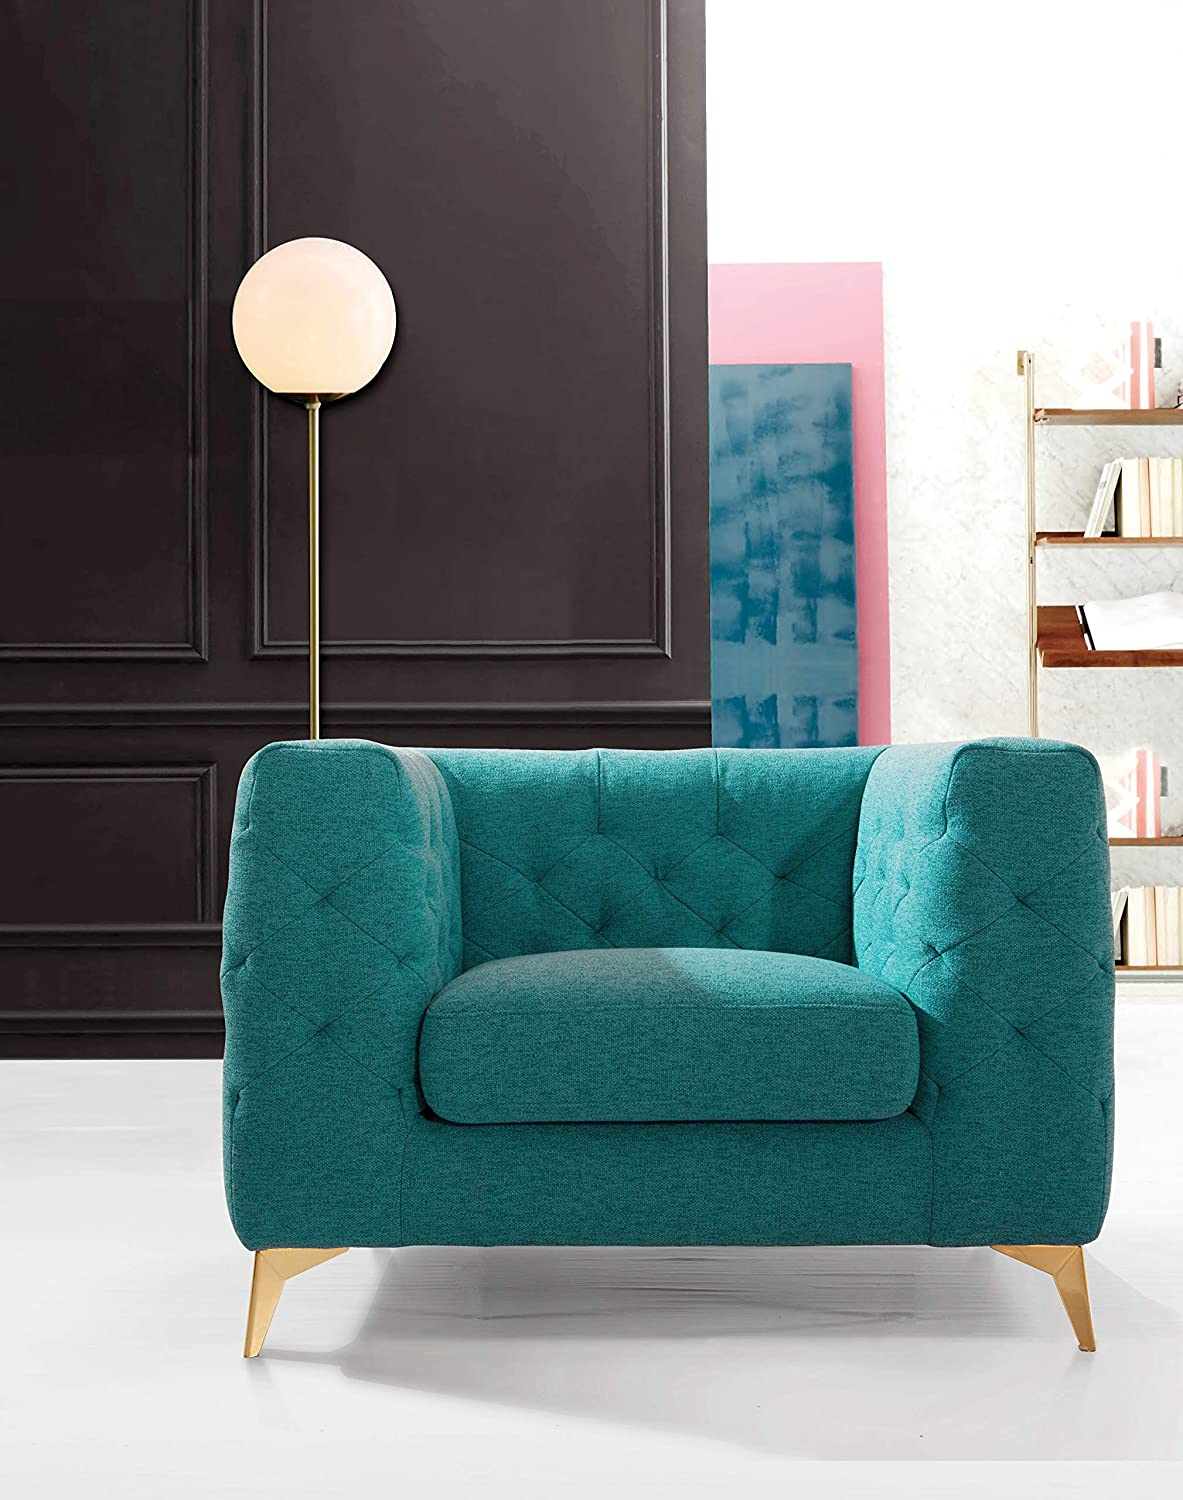 Iconic Home Soho Accent Club Chair Linen Textured Upholstery Plush Tufted Shelter Arm Solid Gold Tone Metal Legs Modern Transitional, GREEN